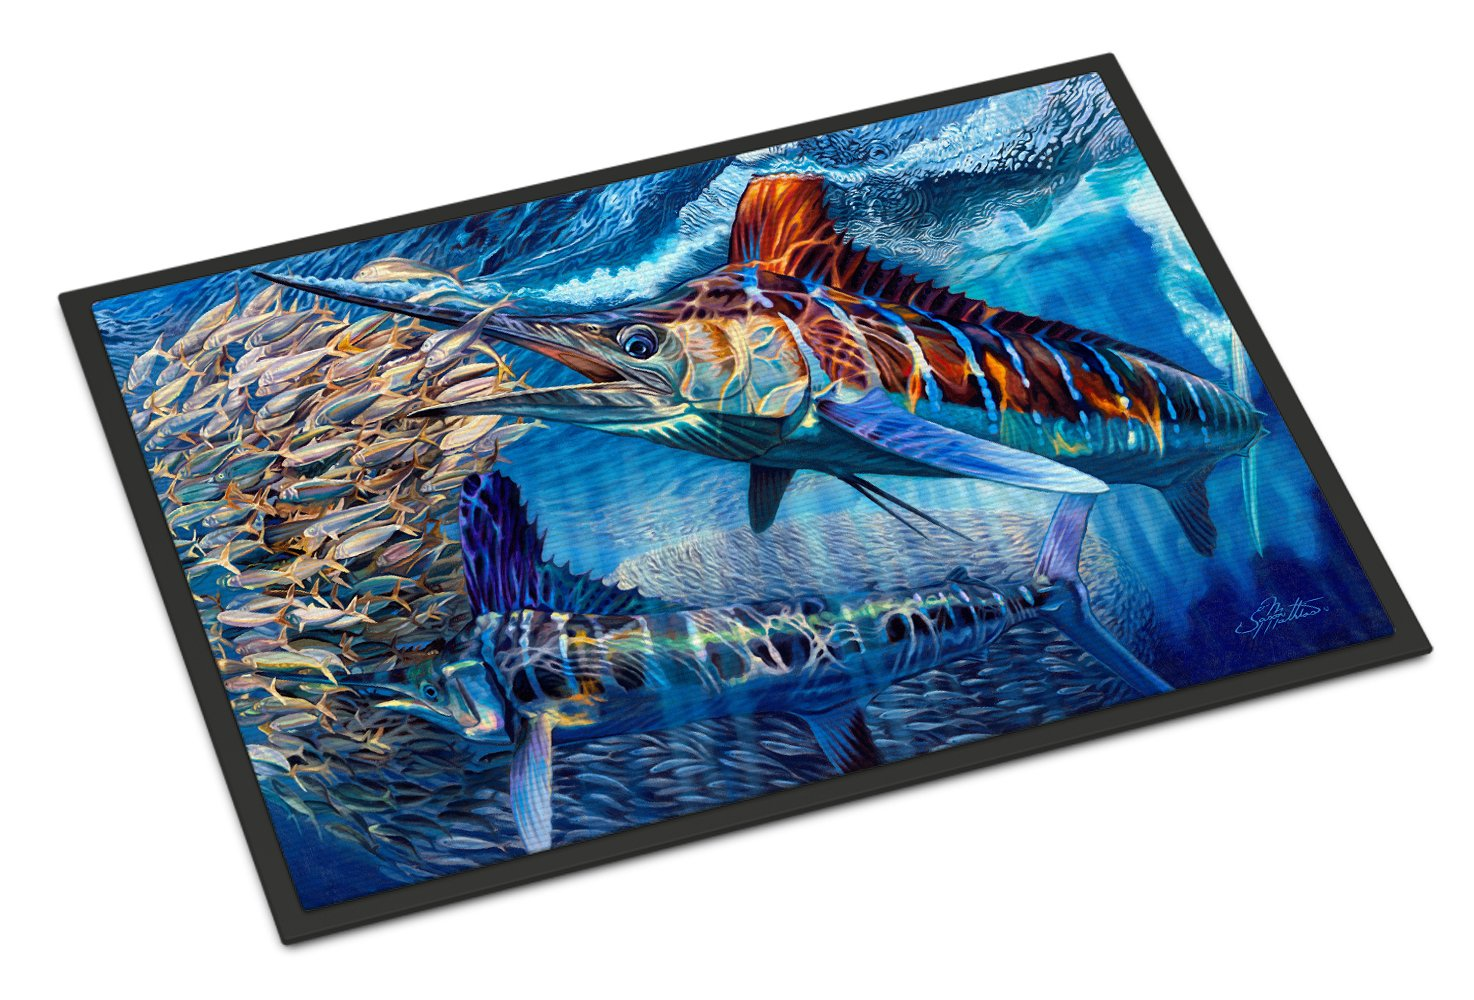 White Night White Marlin Indoor or Outdoor Mat 24x36 JMA2008JMAT by Caroline's Treasures